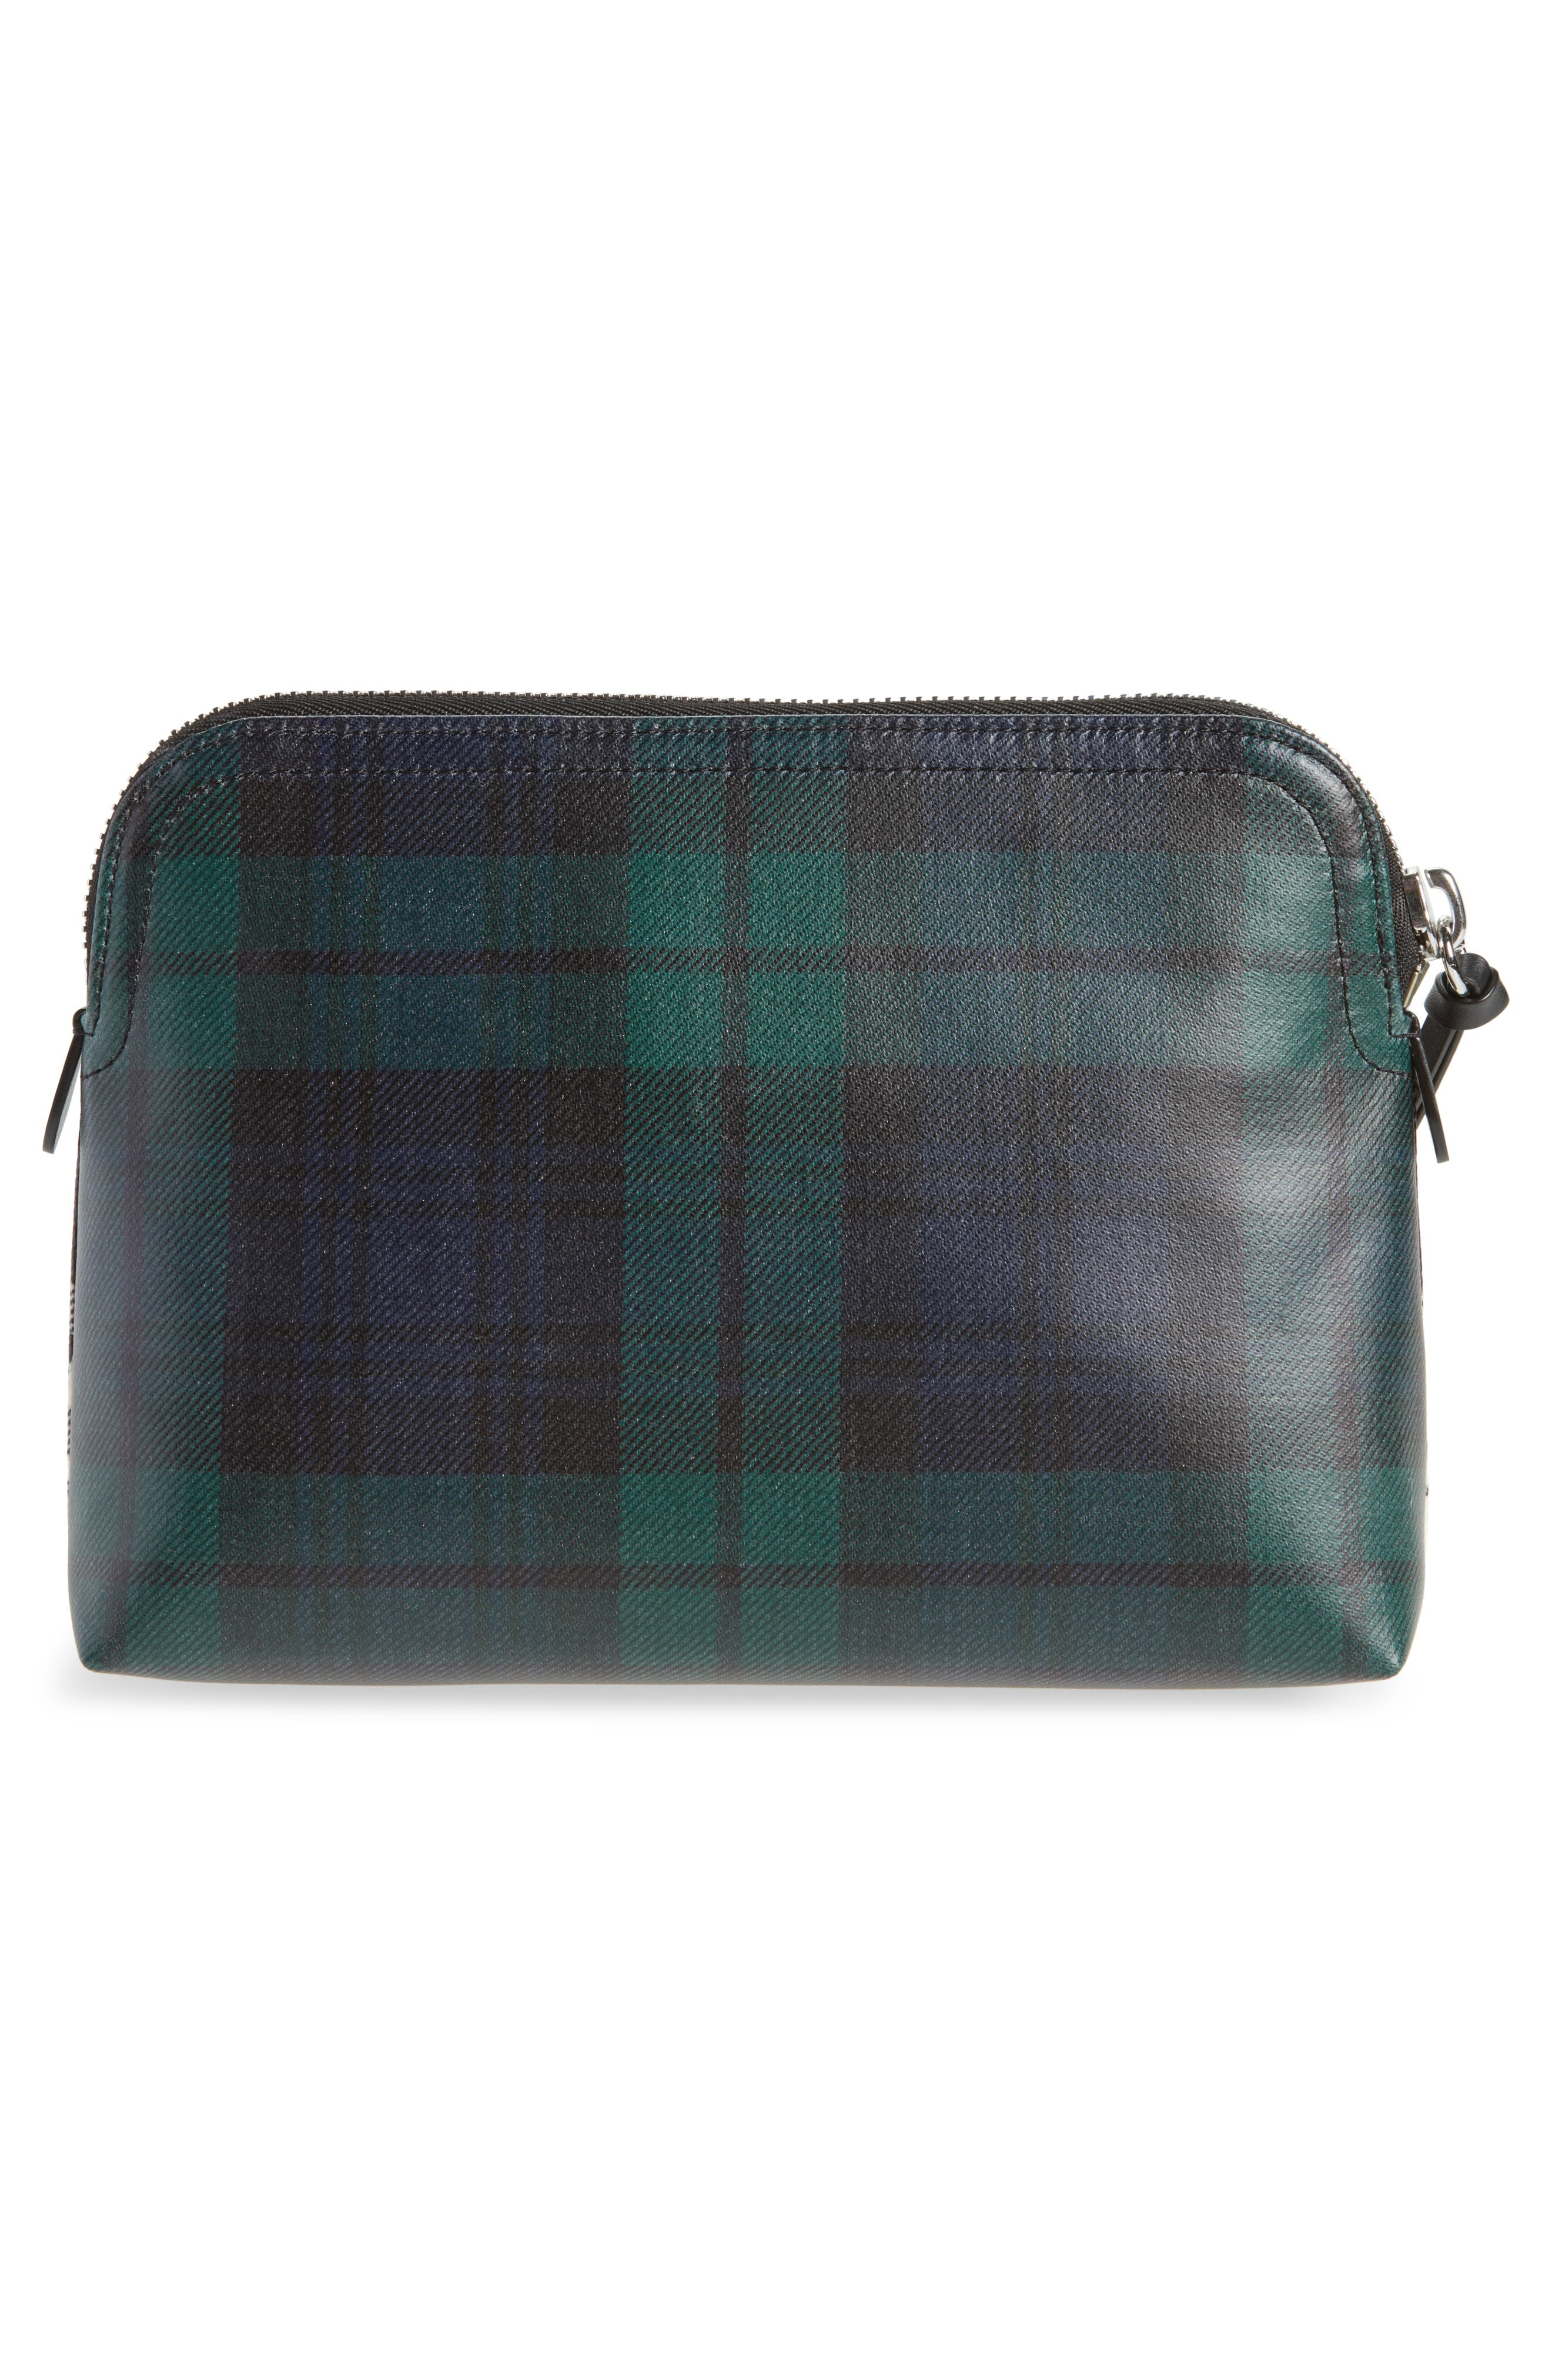 Laminated Tartan Pouch,                             Alternate thumbnail 3, color,                             001